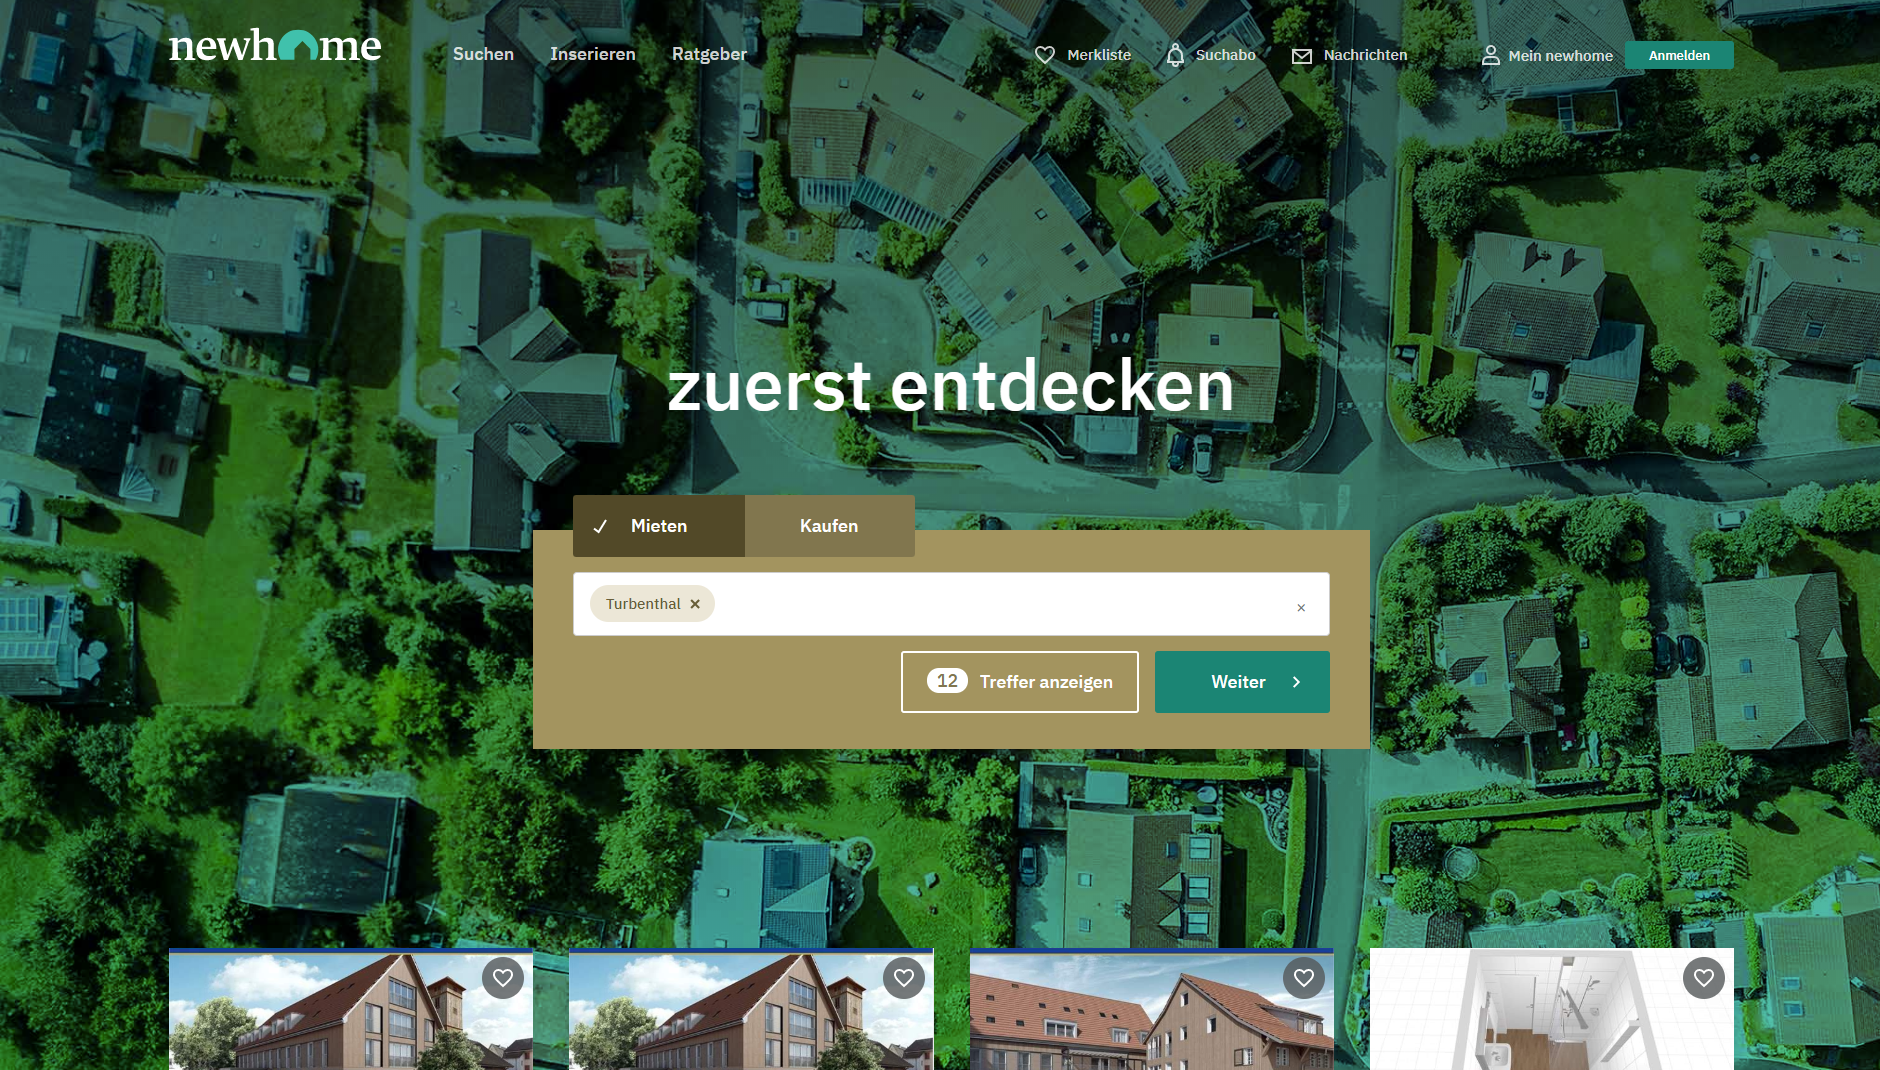 Breaking News - neue newhome.ch ist live